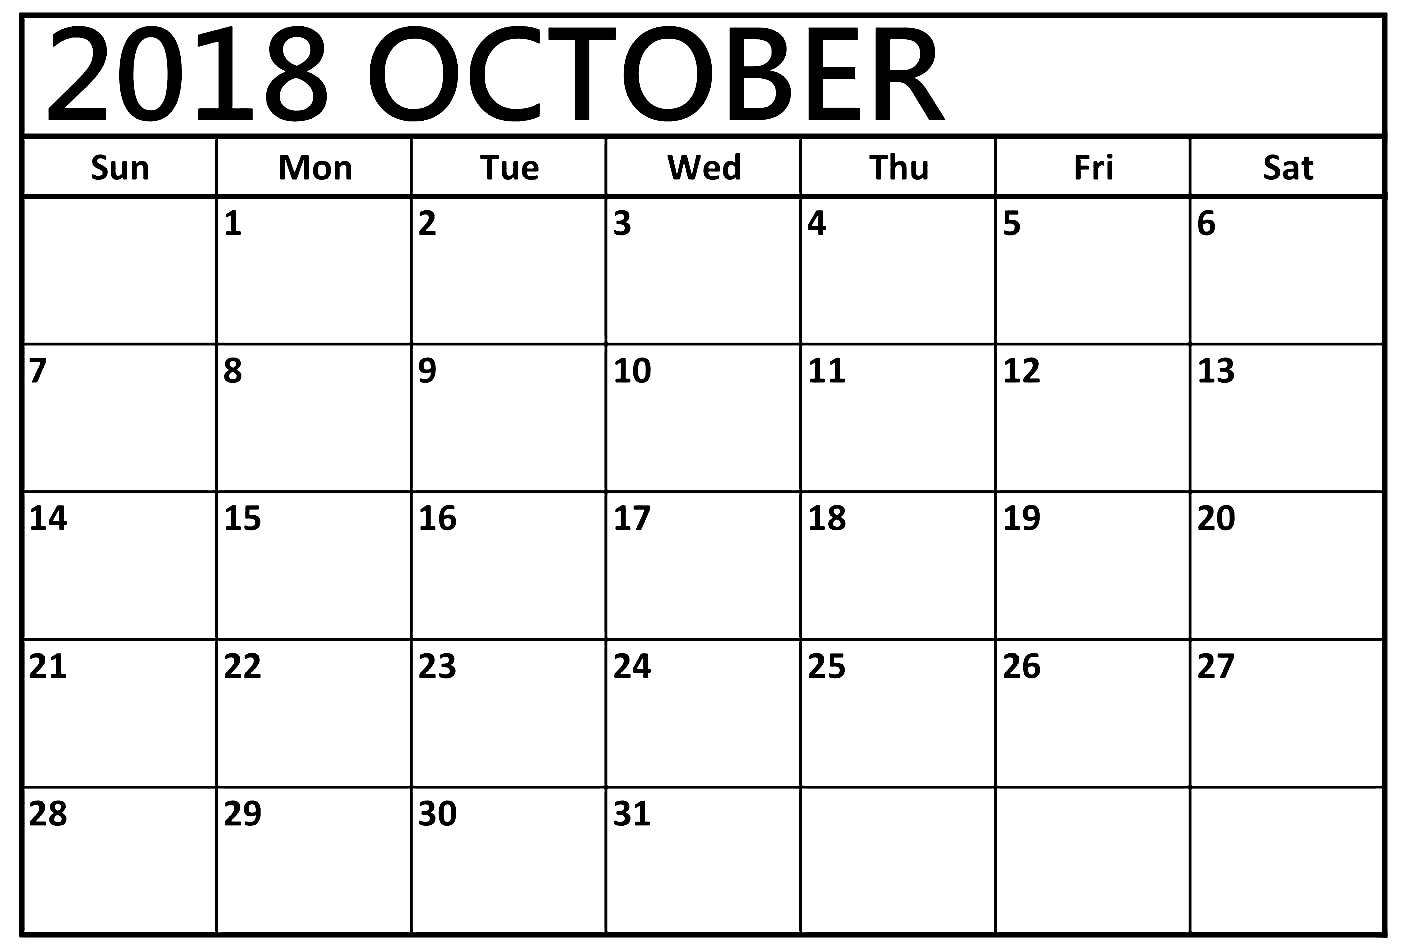 October 2018 Calendar Word Doc